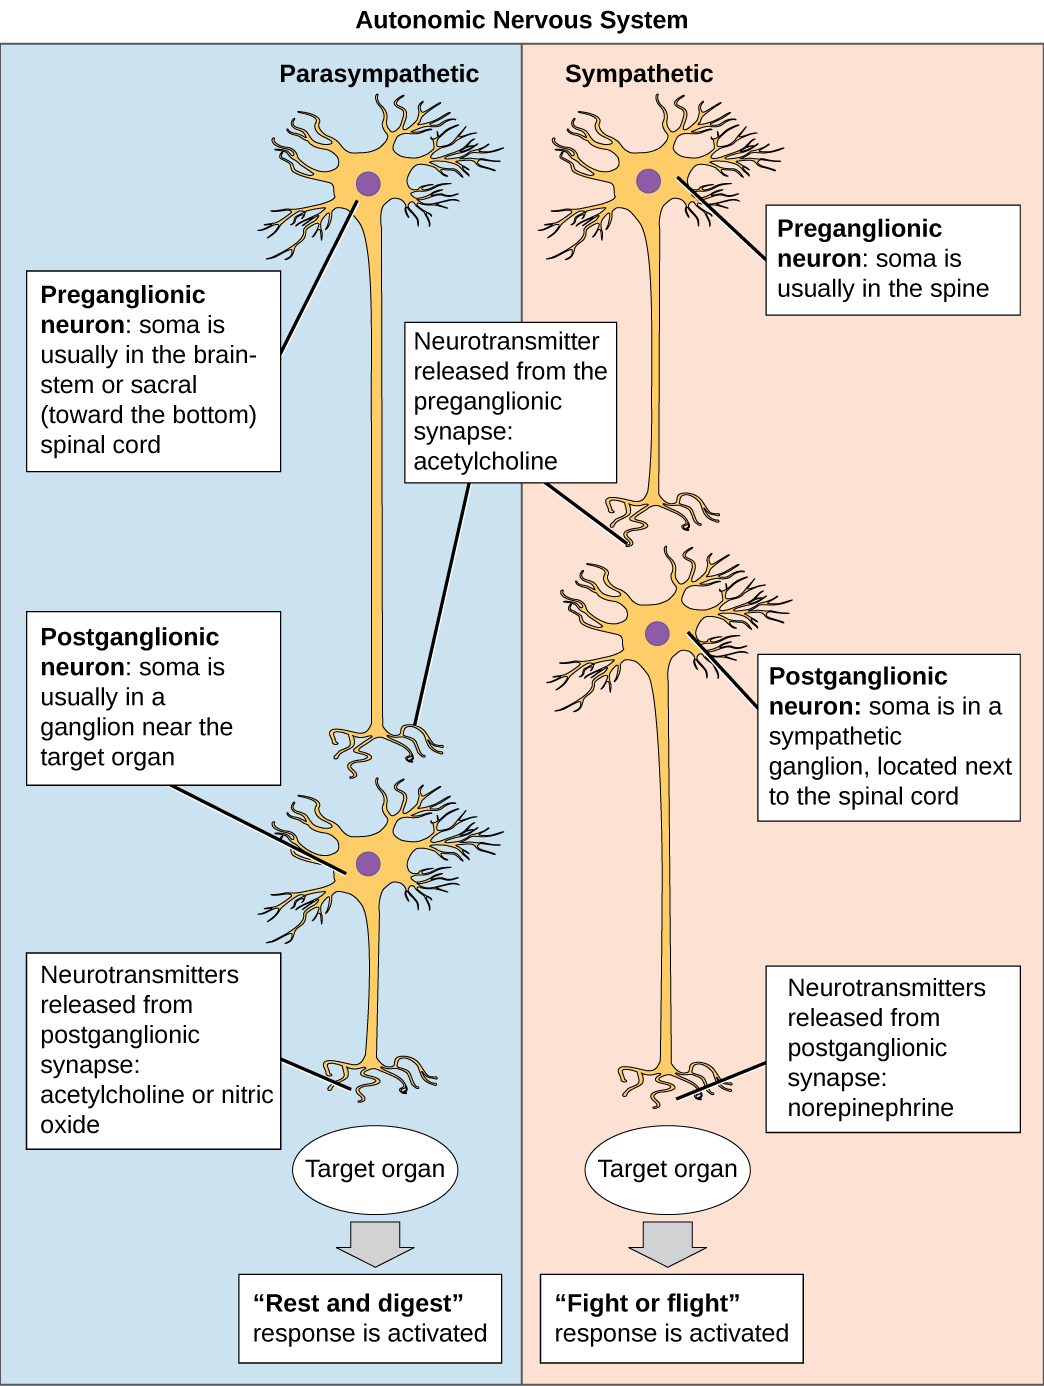 The autonomic nervous system is divided into sympathetic and parasympathetic systems. In the sympathetic system, the soma of the preganglionic neurons is usually located in the spine while in the parasympathetic system the soma is usually in the brainstem or sacral, at the bottom of the spine. In both systems, the preganglionic neuron releases the neurotransmitter acetylcholine into the synapse. Postganglionic neurons of the sympathetic system have somas in a sympathetic ganglion, located next to the spinal cord. Postganglionic neurons of the parasympathetic system have somas in ganglions near the target organ. Postganglionic neurons of the sympathetic system release norepinephrine into the synapse, while postganglionic neurons of the parasympathetic system release acetylcholine or nitric oxide.